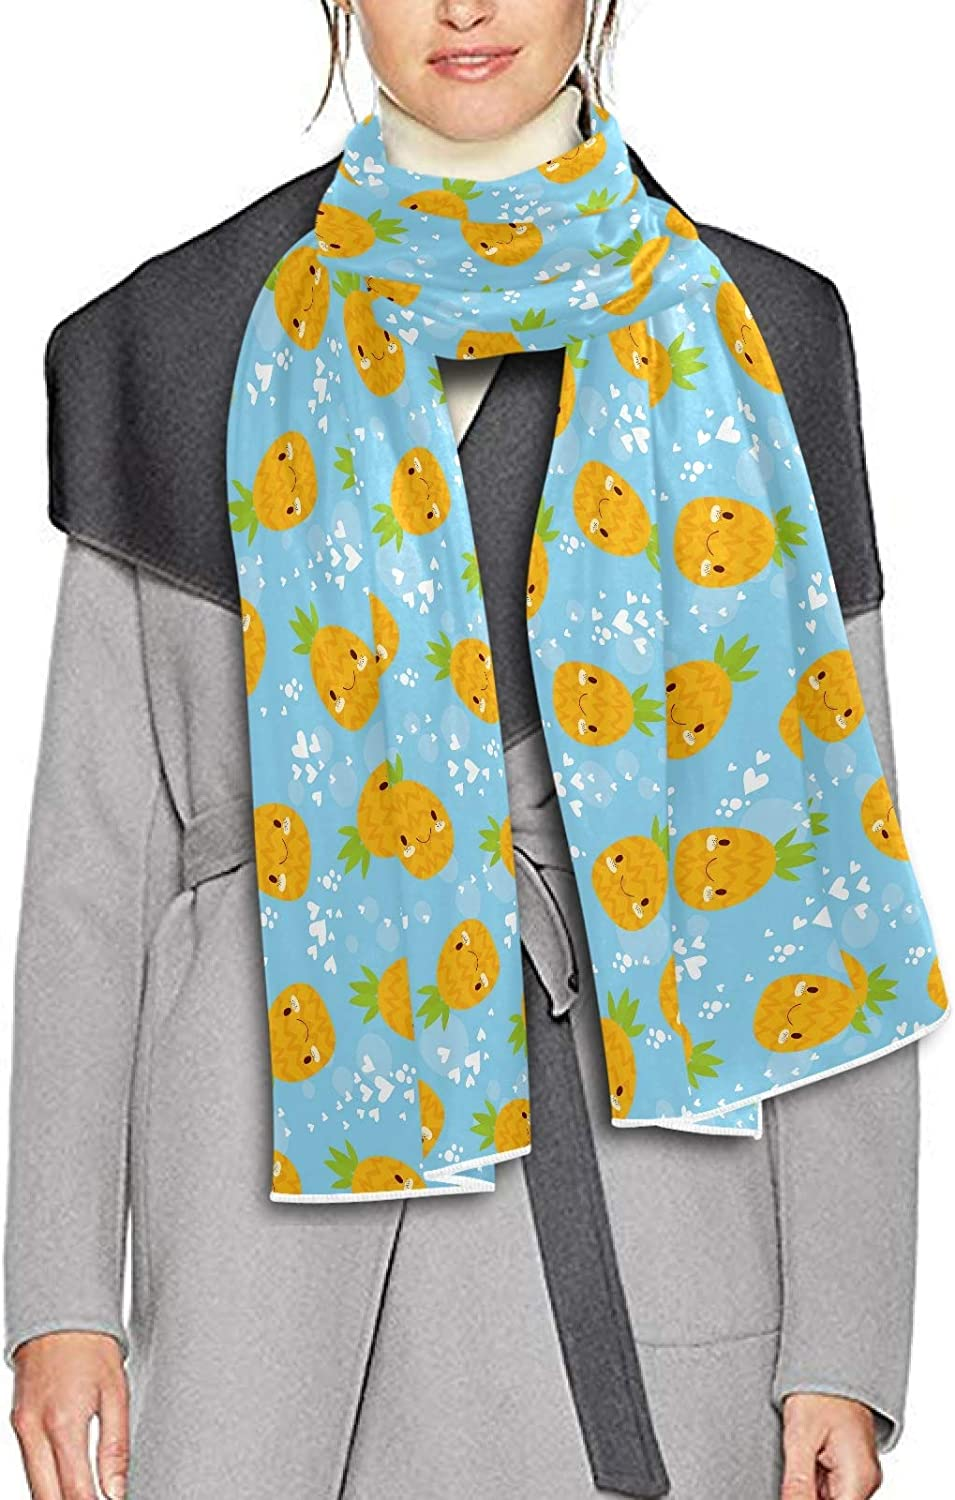 Scarf for Women and Men Pineapple Heart Blanket Shawl Scarves Wraps Soft thick Winter Oversized Scarves Lightweight